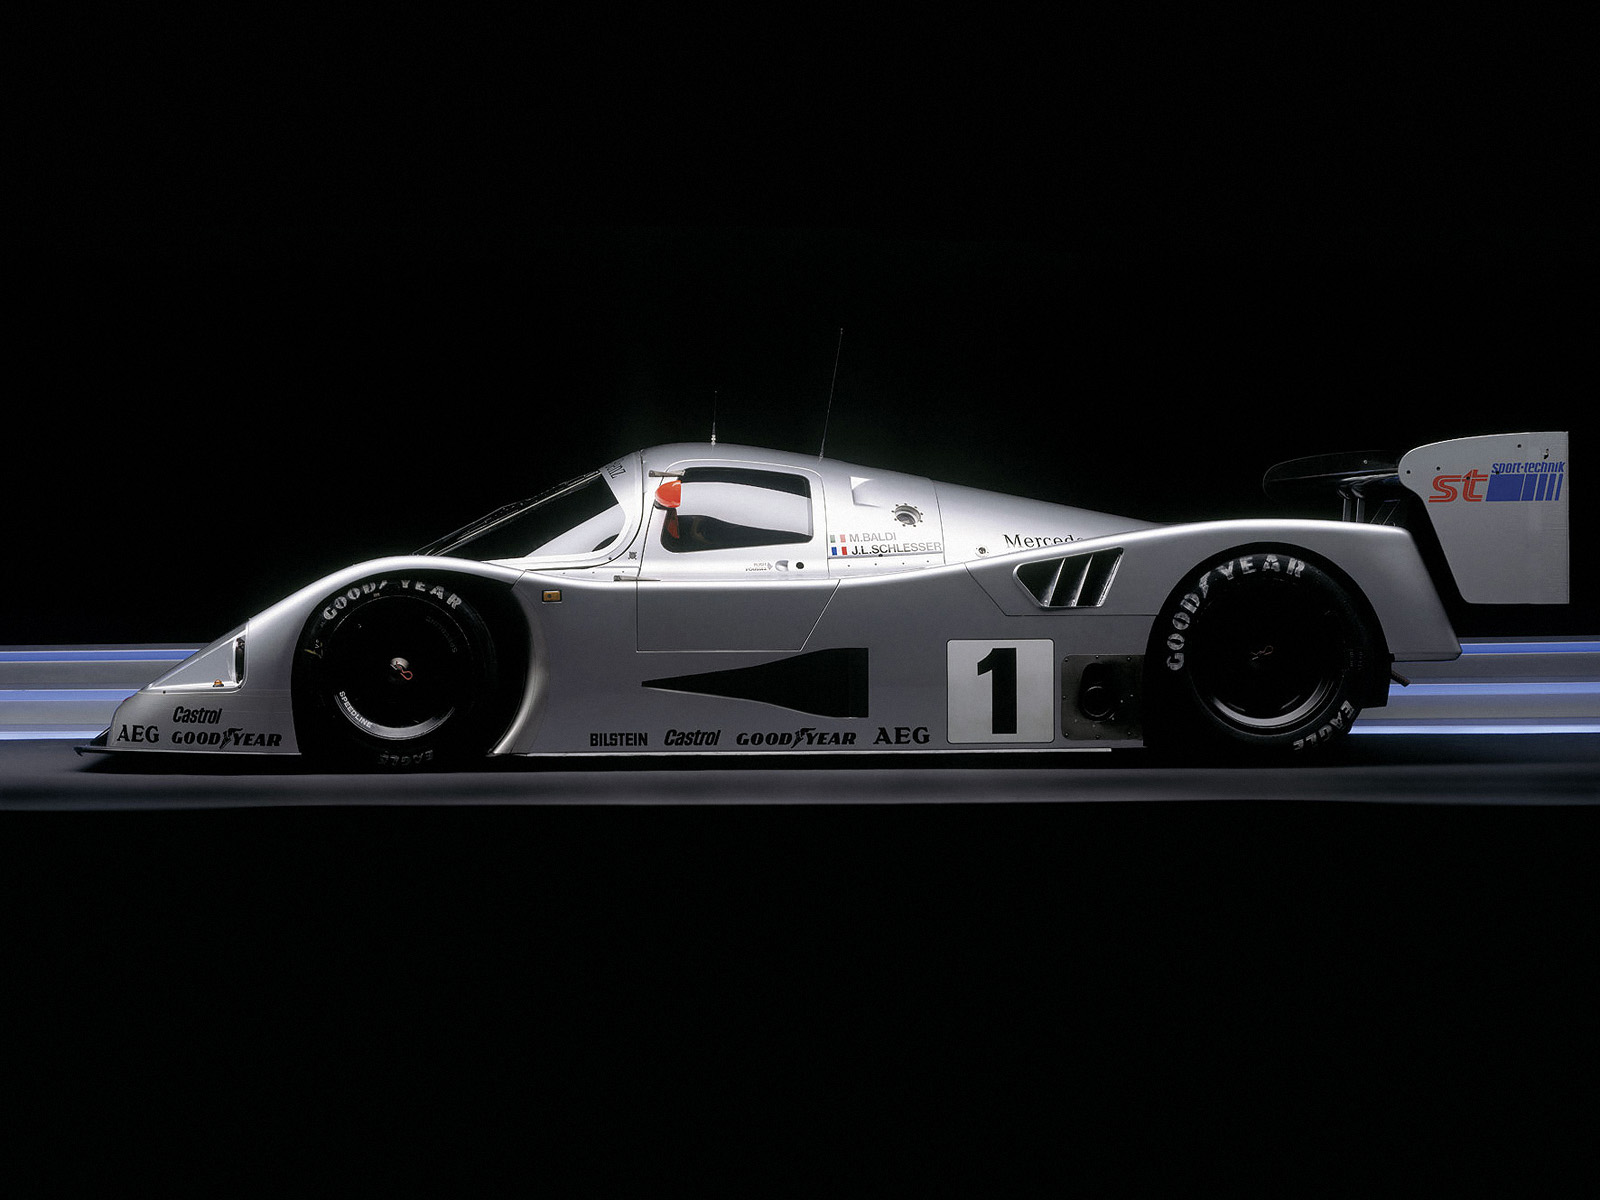 Formula 1 Cars Wallpapers Hd 1990 Sauber Mercedes Benz C11 Race Racing Gw Wallpaper